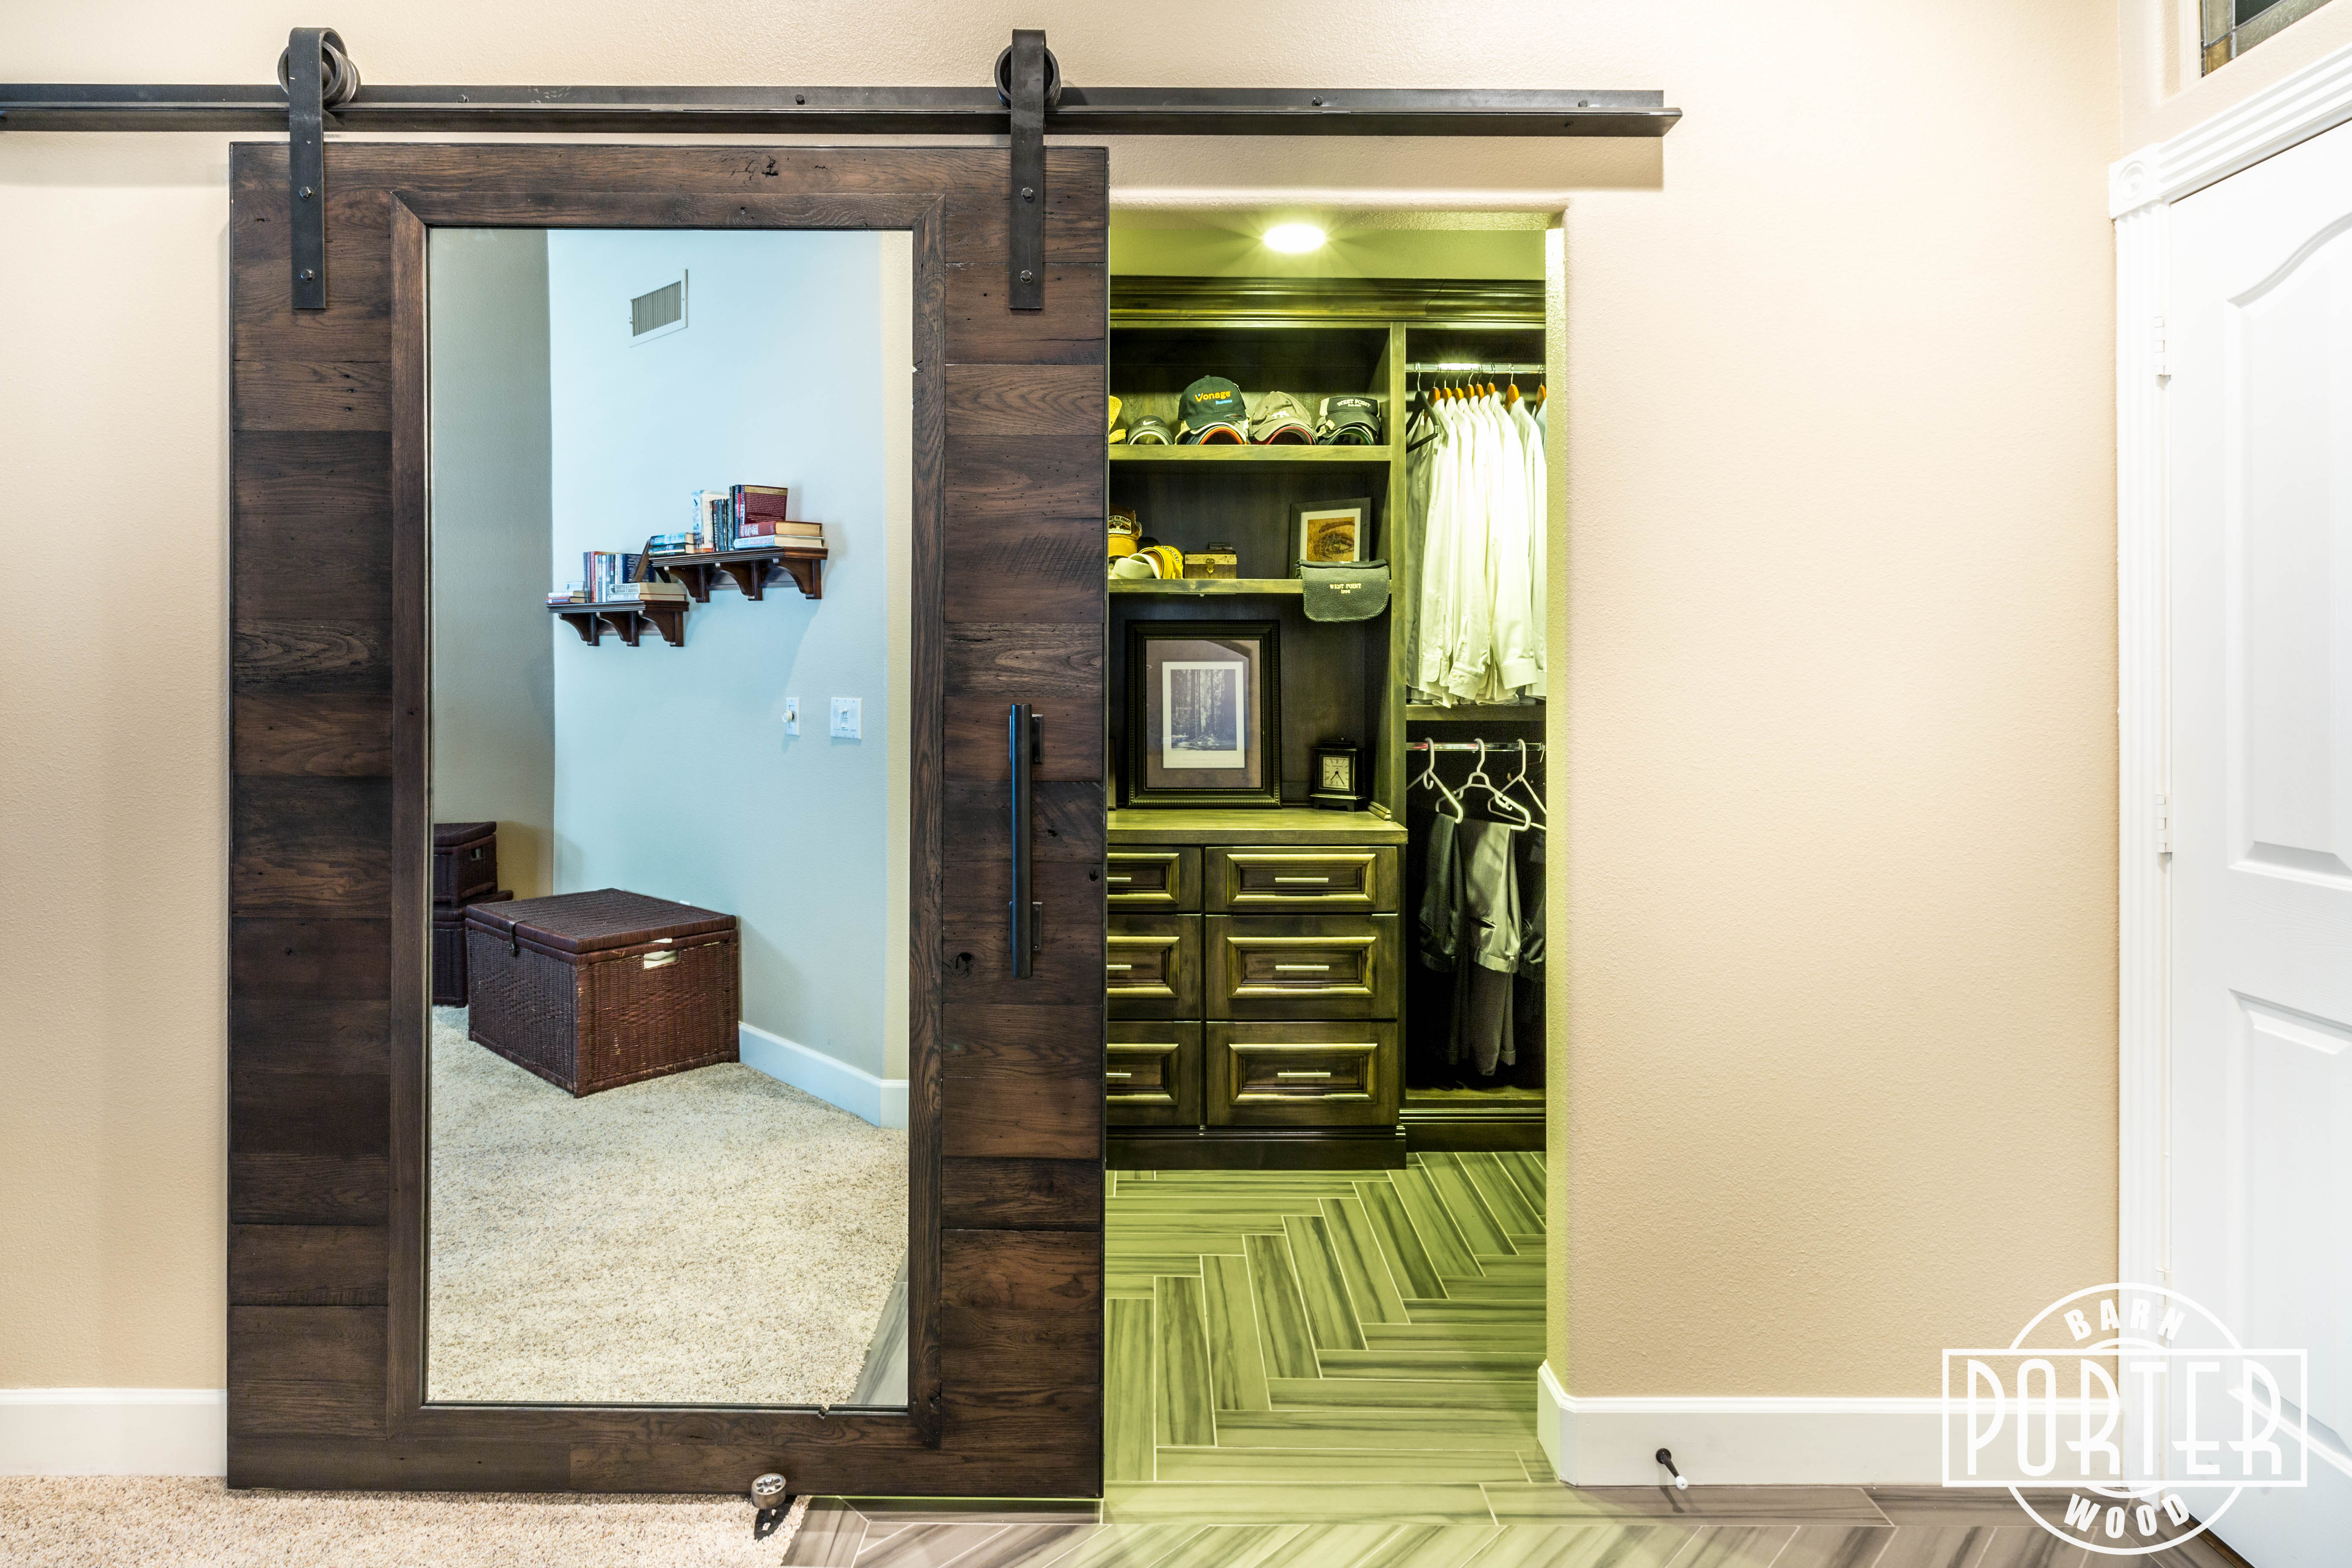 frame awesome doors sliding trend pics tfast of u islademargaritainfo and image popular simple inspiration hardware door closet astonishing on for outside track